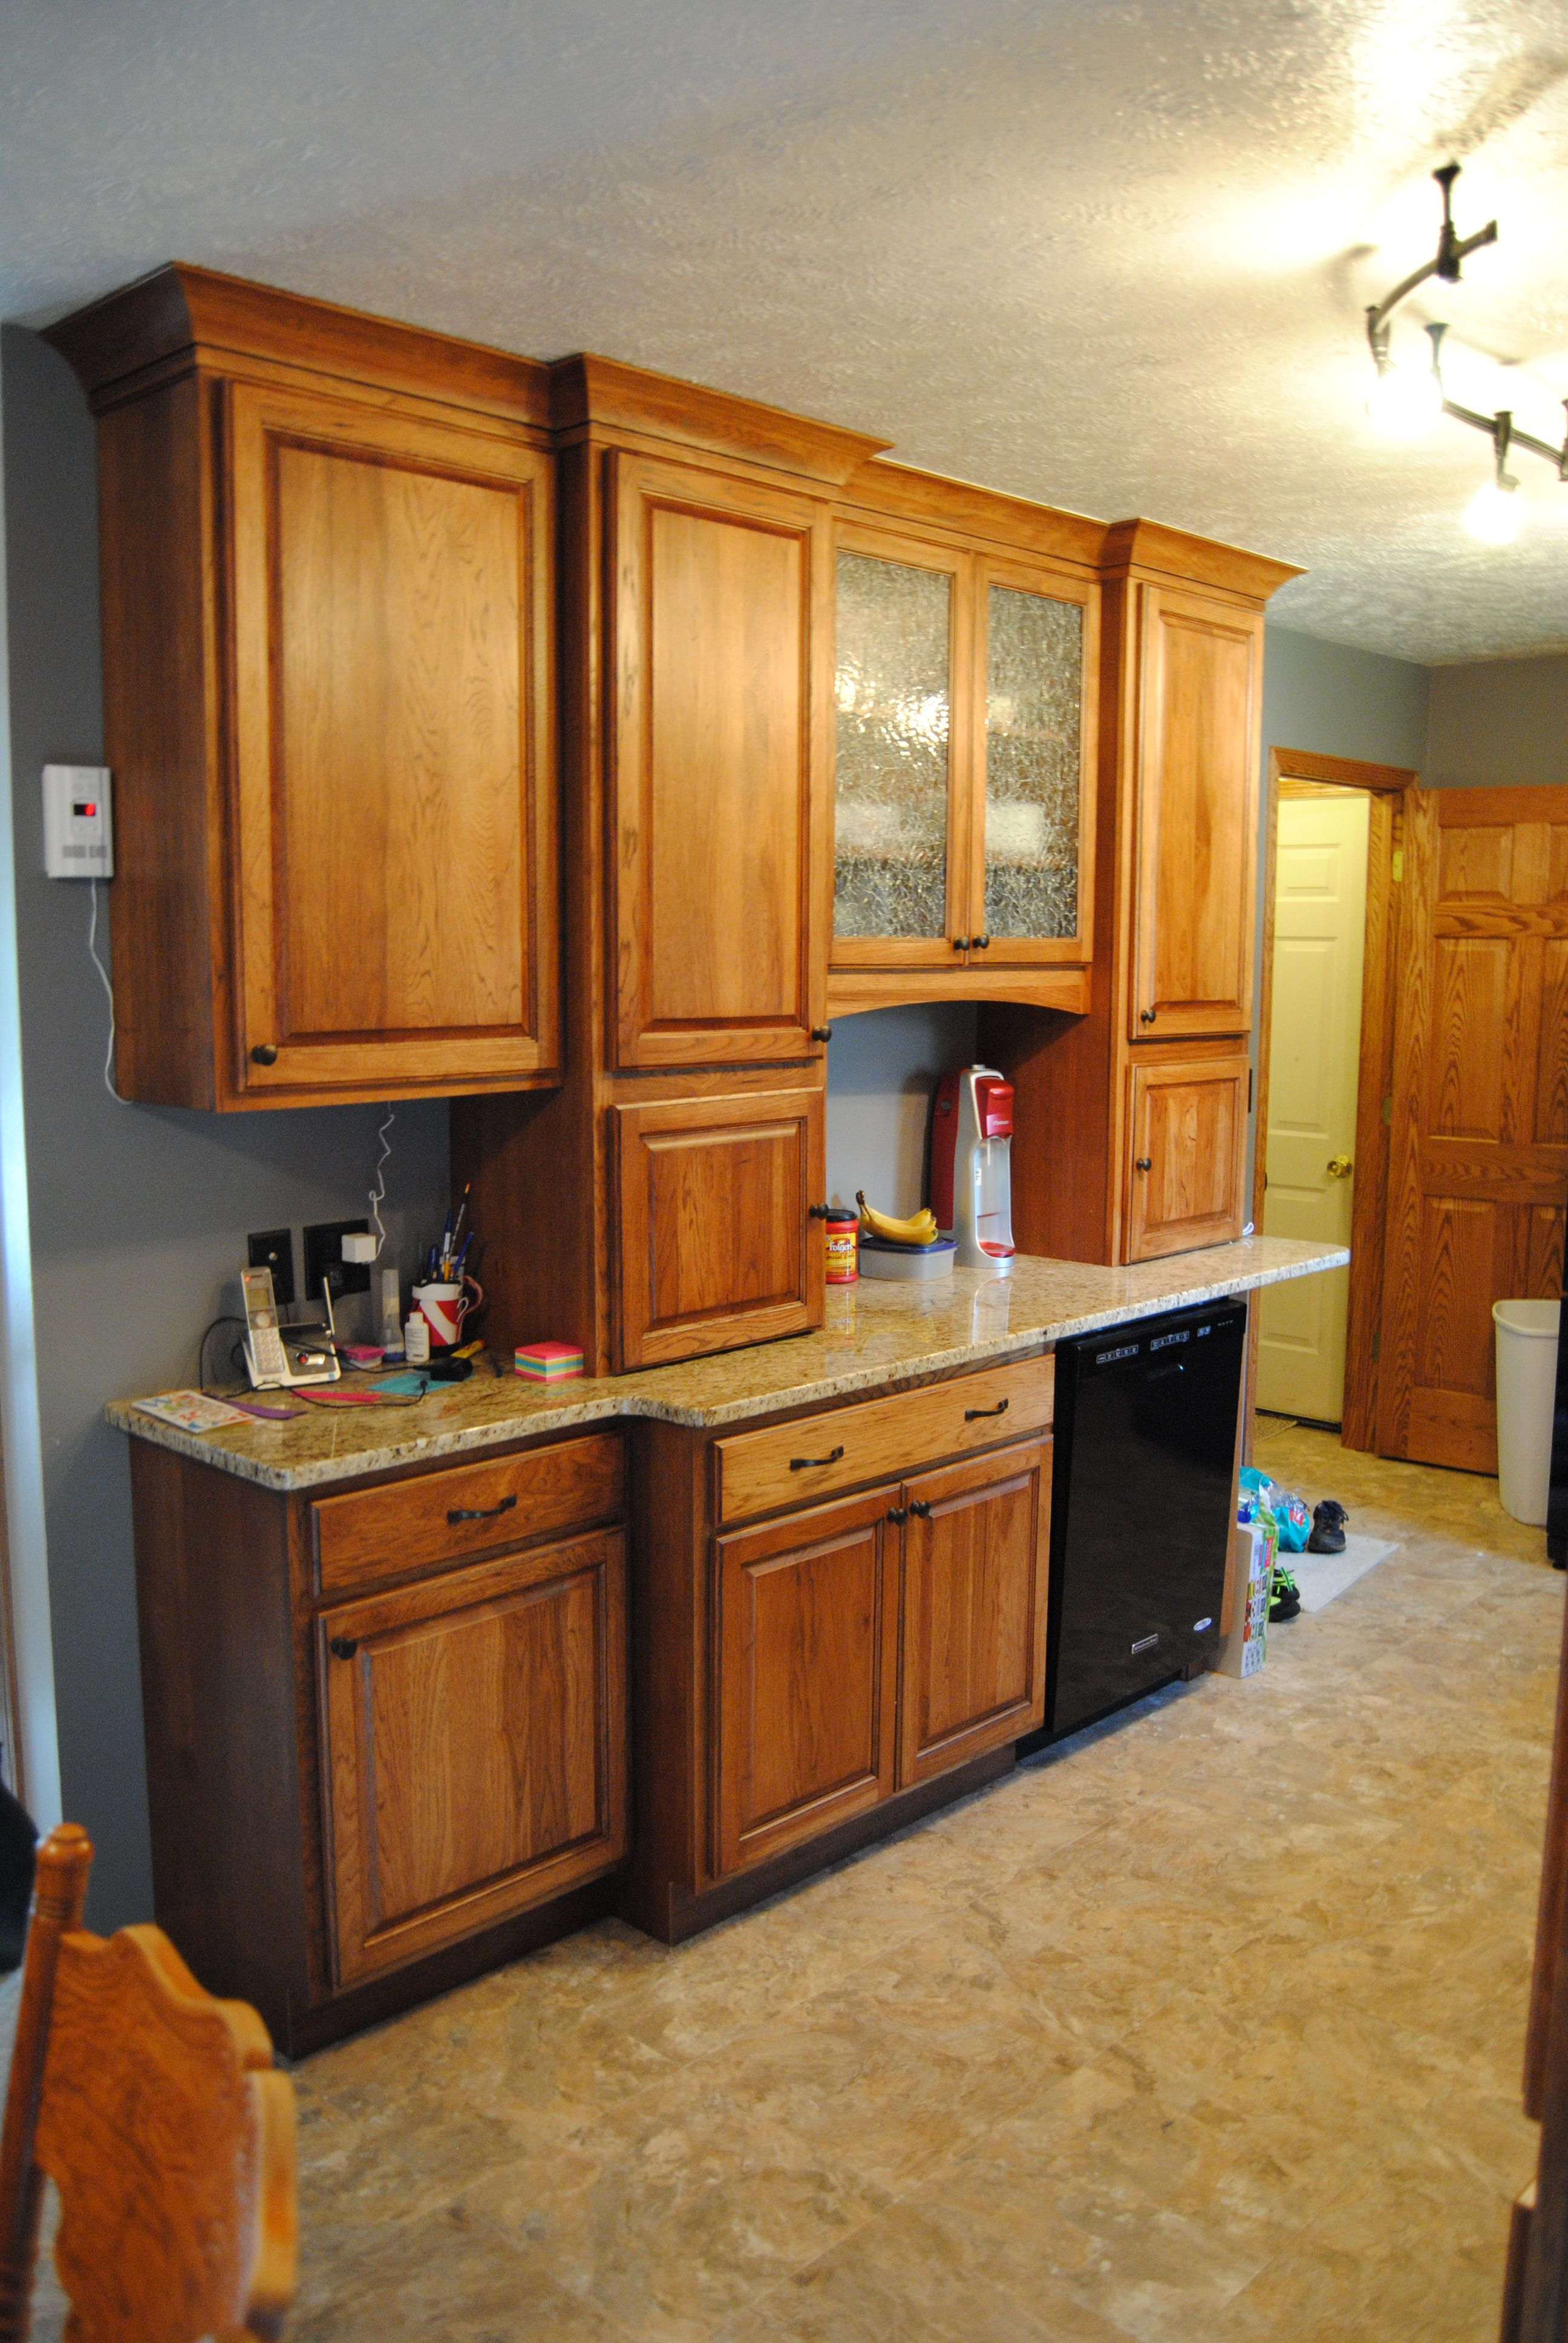 Fieldstone Cabinets With Tremont Door Style In Hickory Finished In Toffee  With Chocolate Glaze. Granite